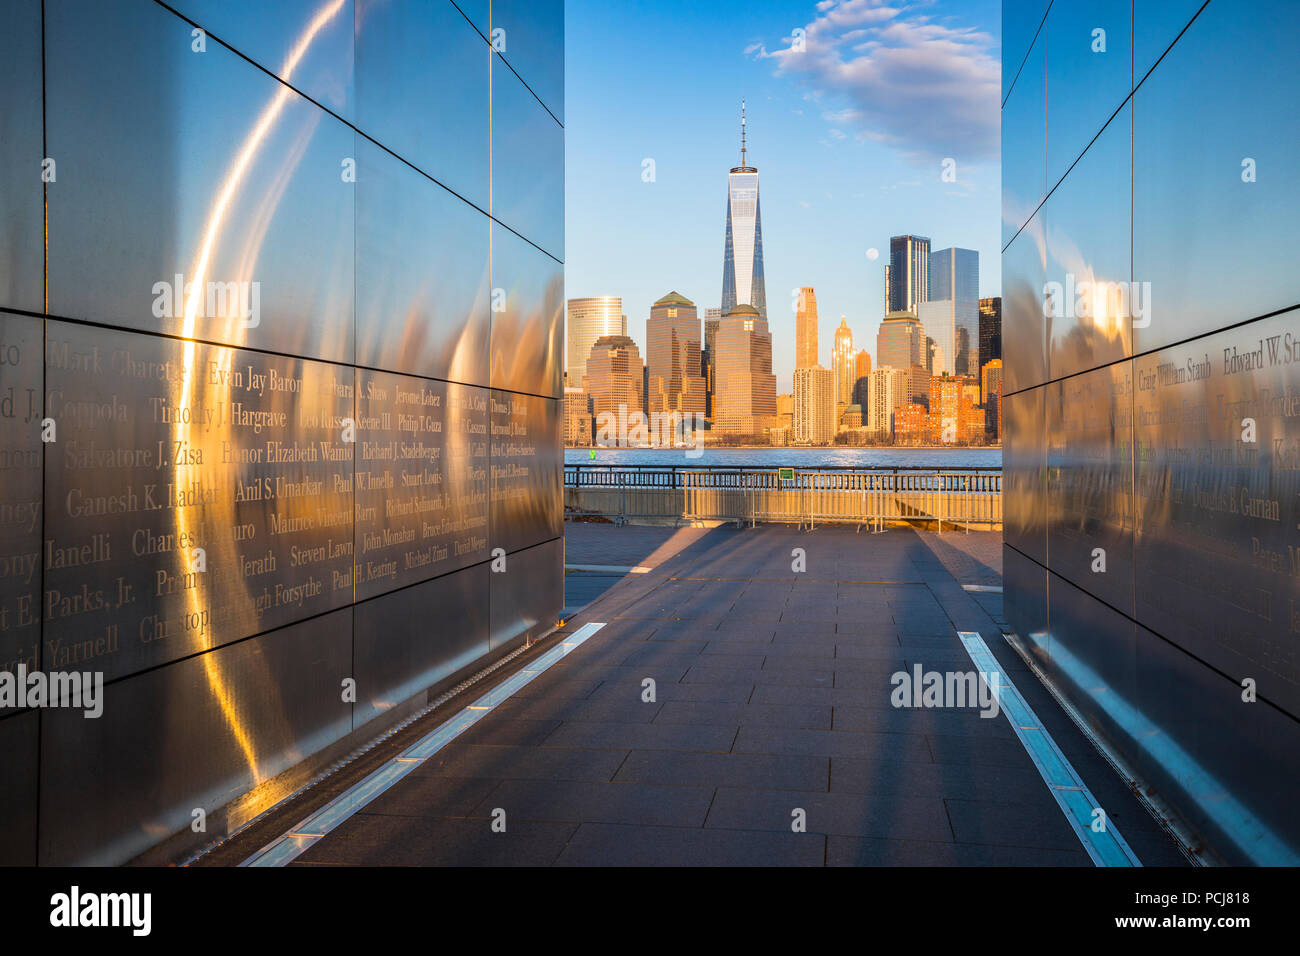 Empty Sky, September 11 memorial at sunset, Liberty State Park, New Jersey - Stock Image